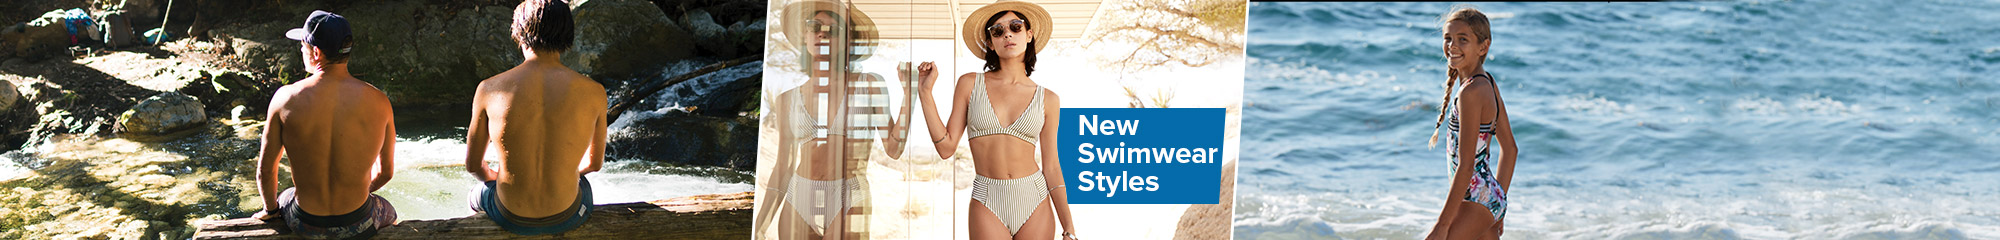 new swim markdowns up to 70% off